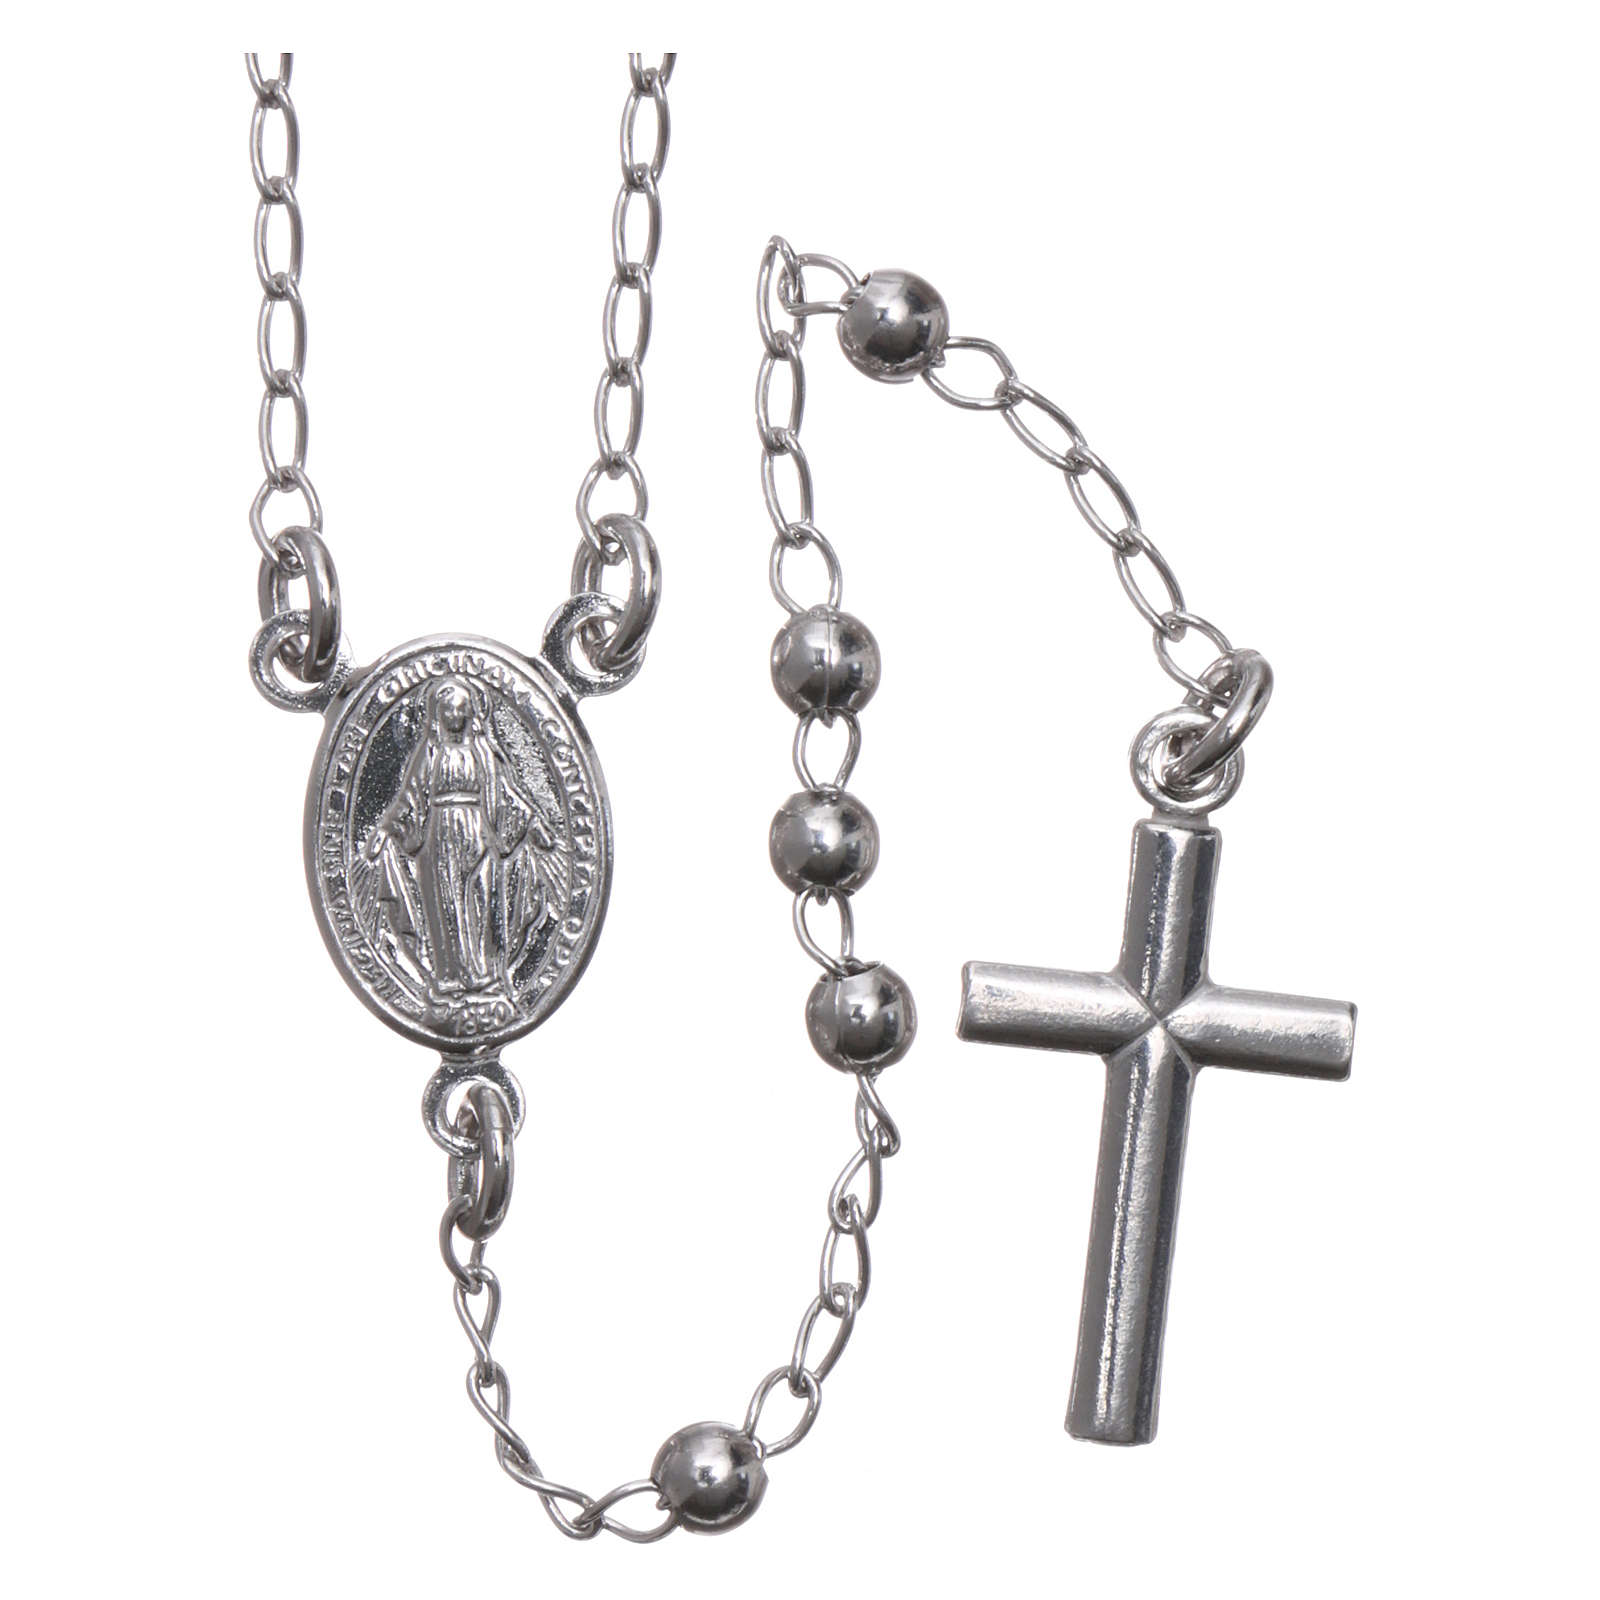 Rosary Necklace AMEN classic 3mm silver 925, Rhodium finish 4